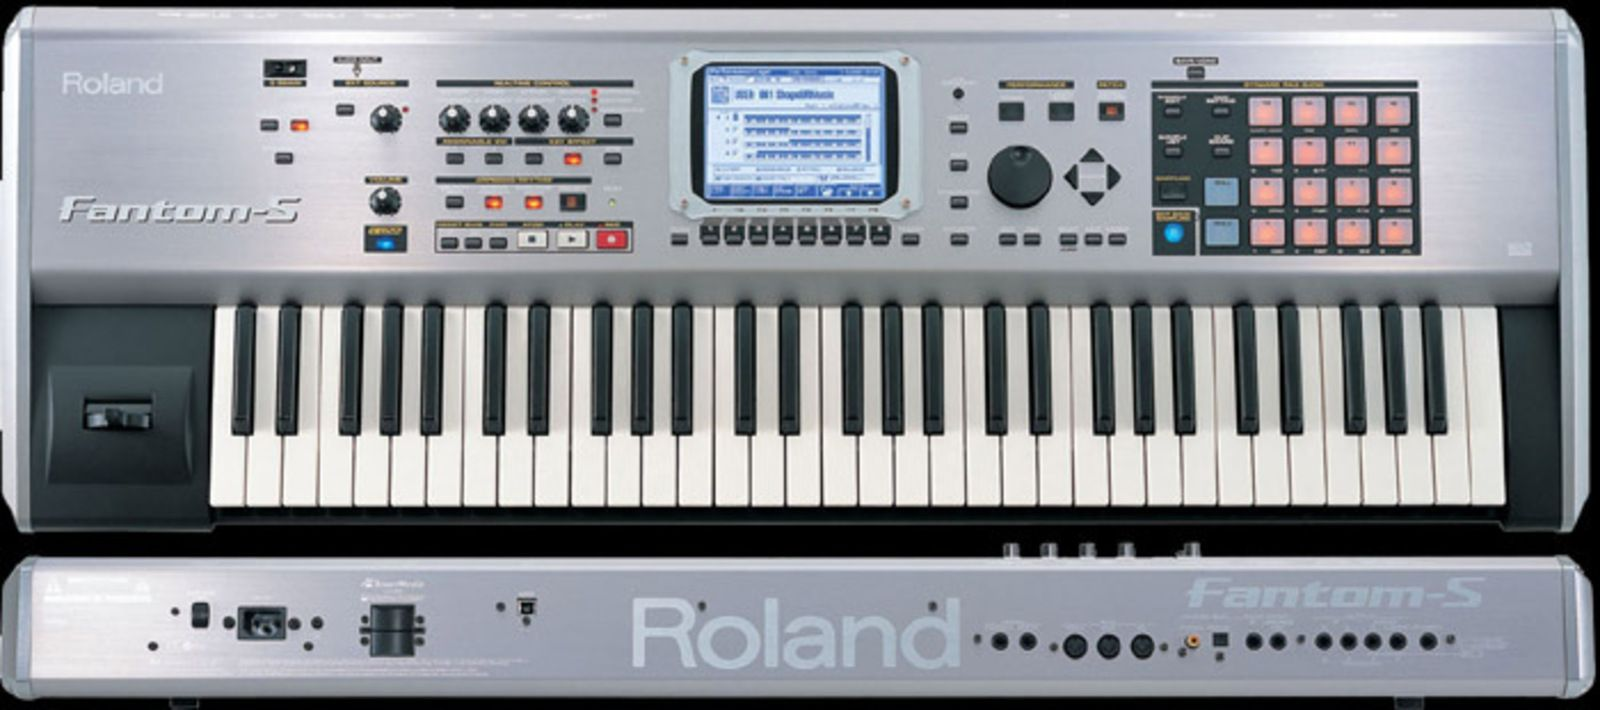 Roland Rd 300 Owners Manual